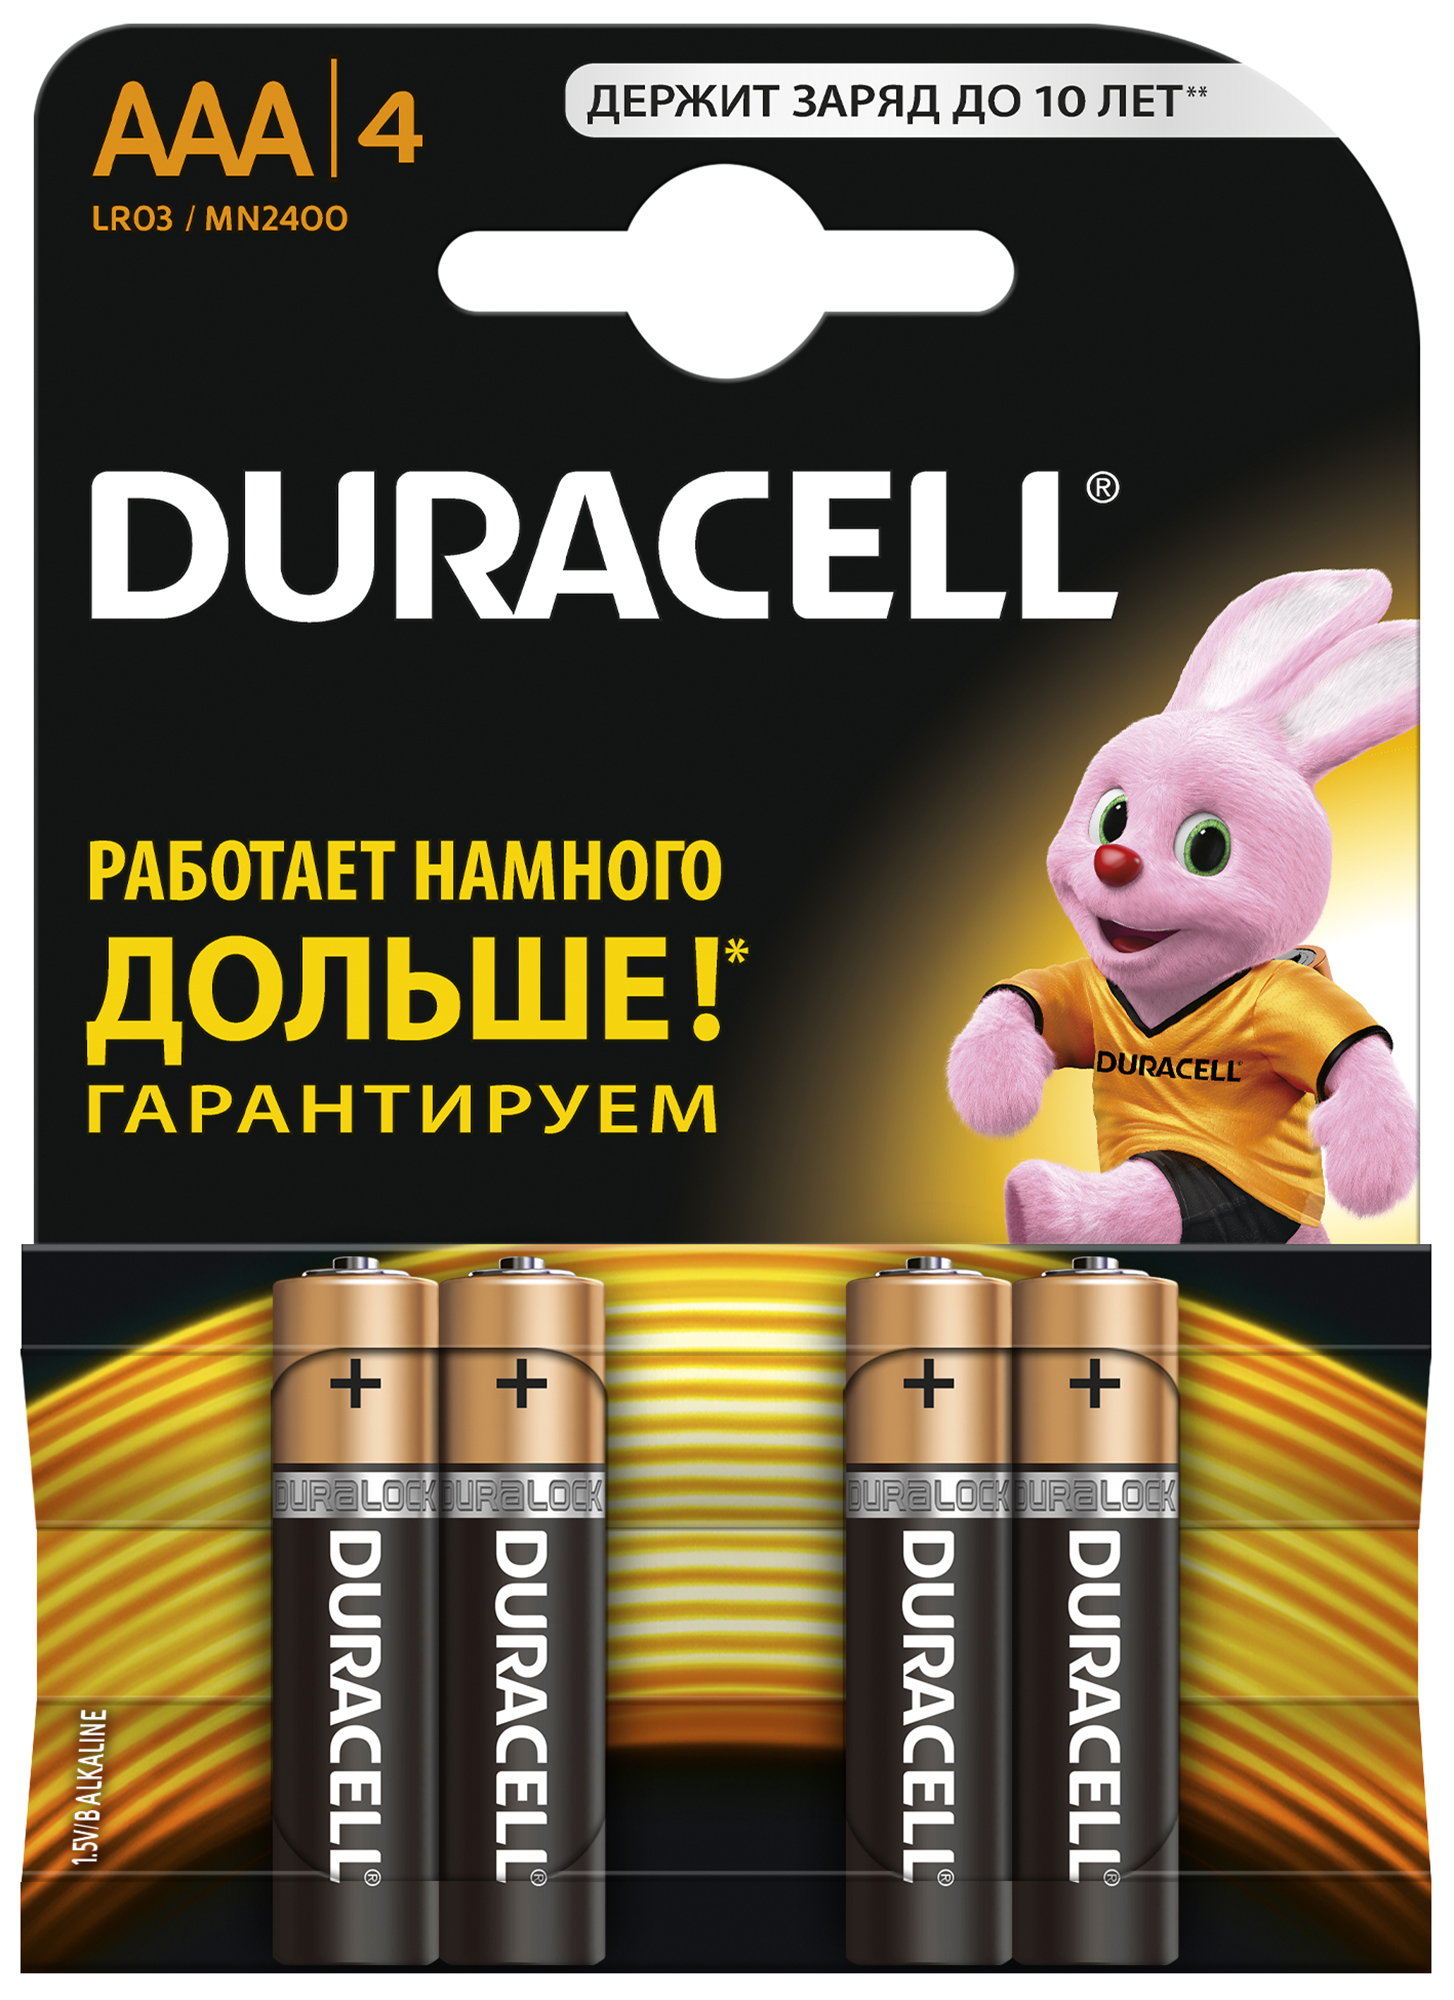 Duracell Батарейки щелочные Duracell Basic AAA/LR03, 4 шт. duracell cef14 4 hour charger